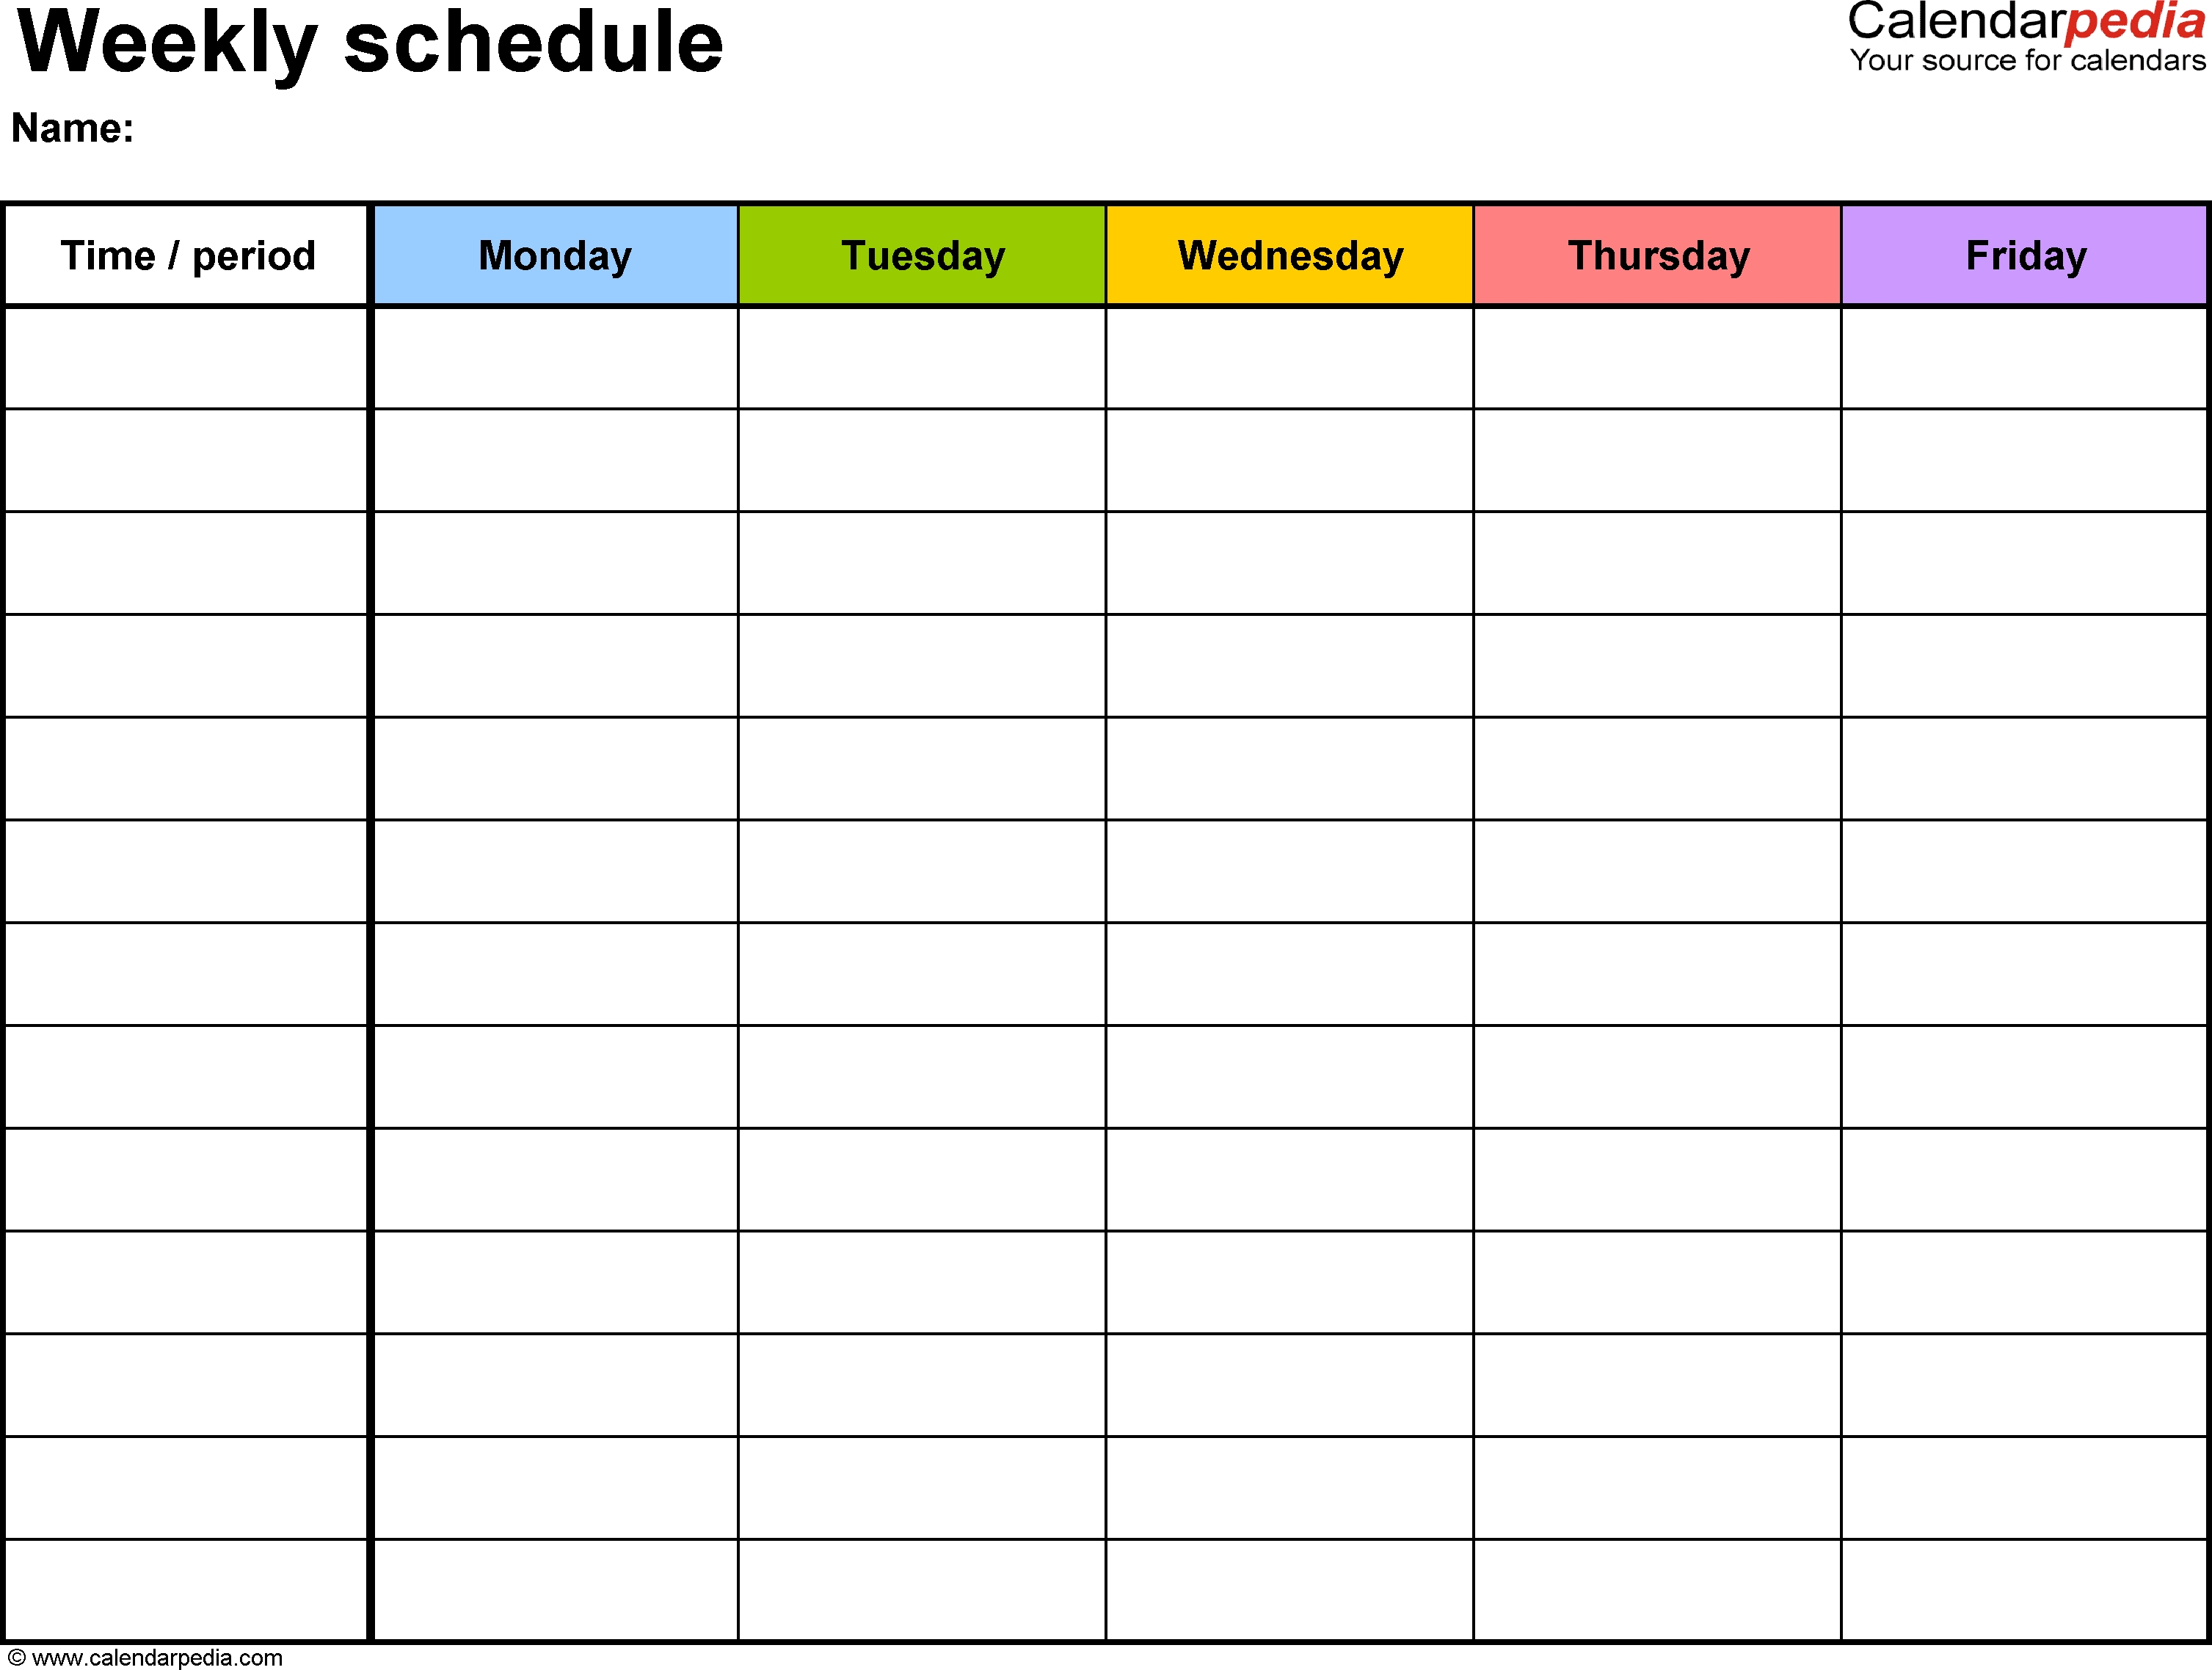 Free Weekly Schedule Templates For Word - 18 Templates throughout Monday Through Friday Weekly Calendar